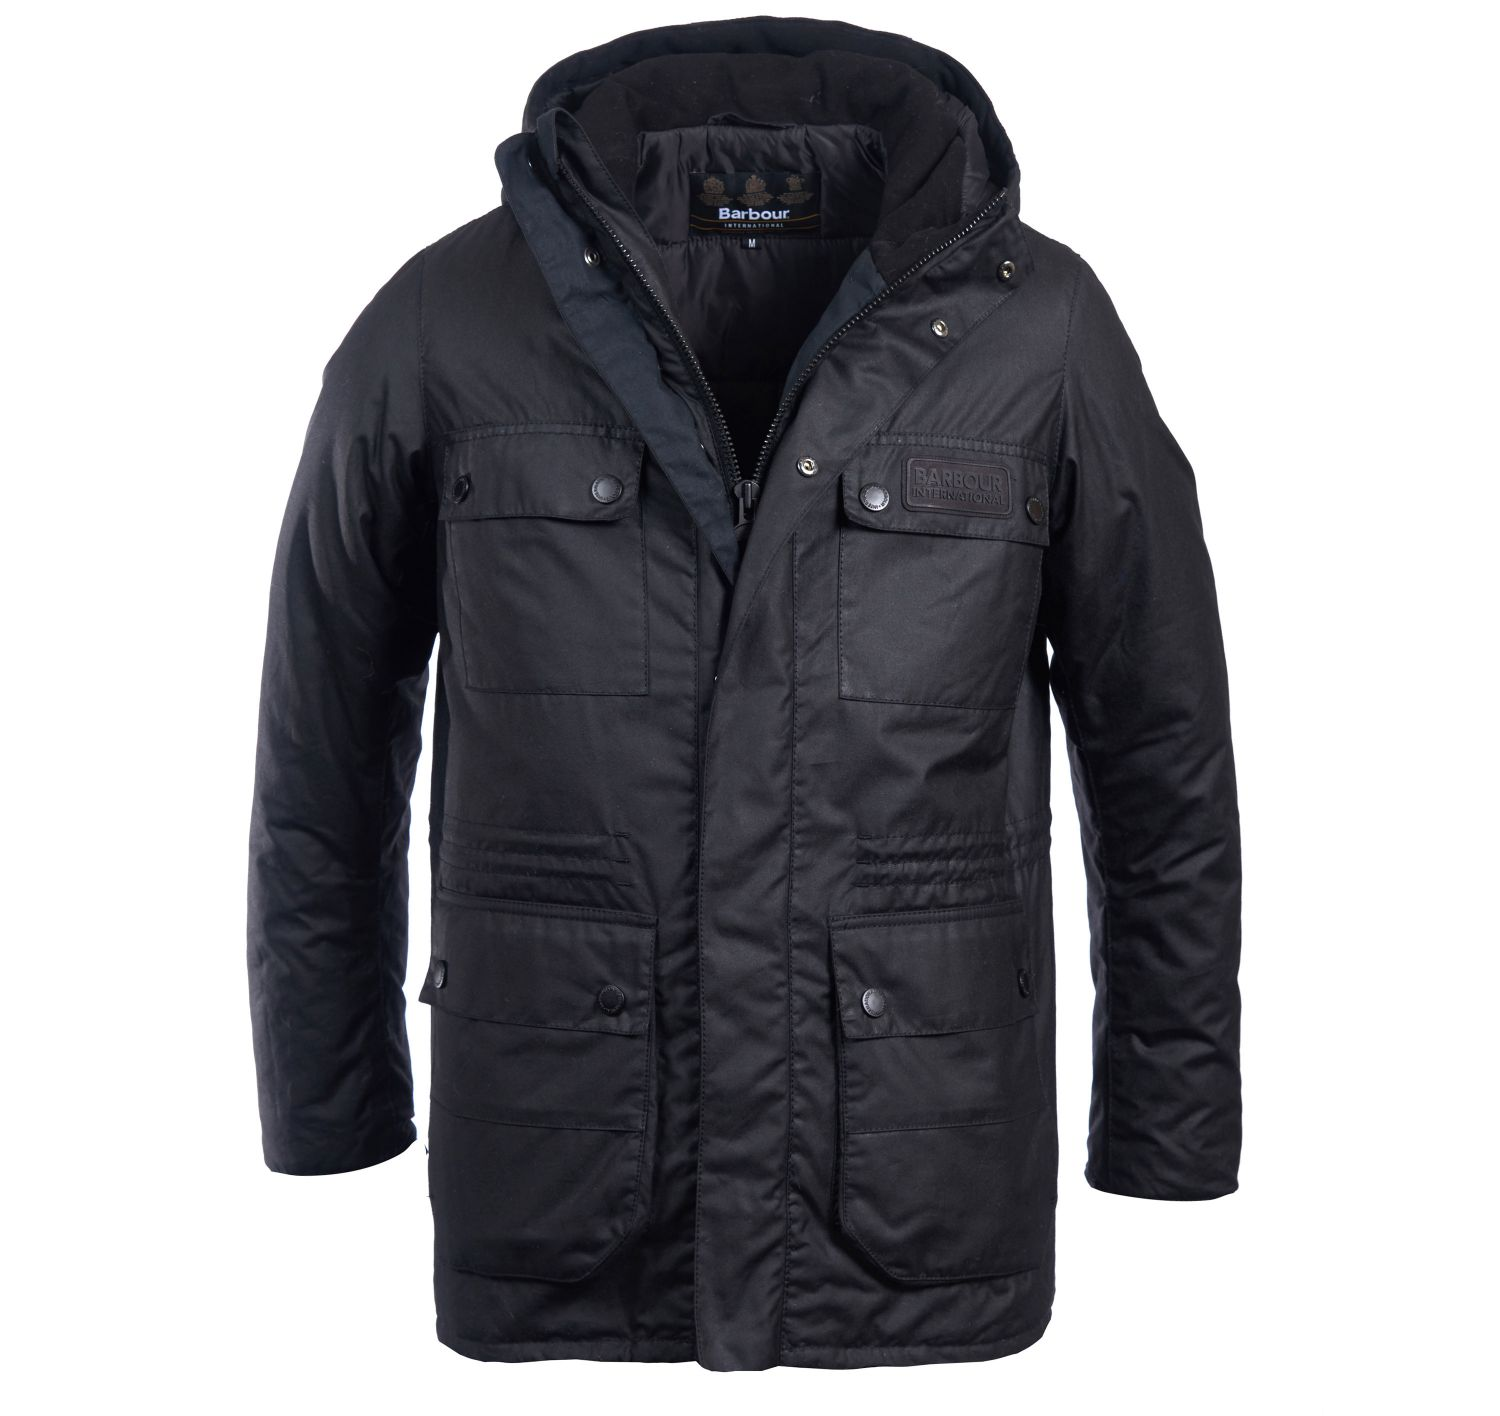 Barbour Intl Imboard Waxed Cotton Jacket Black Barbour International